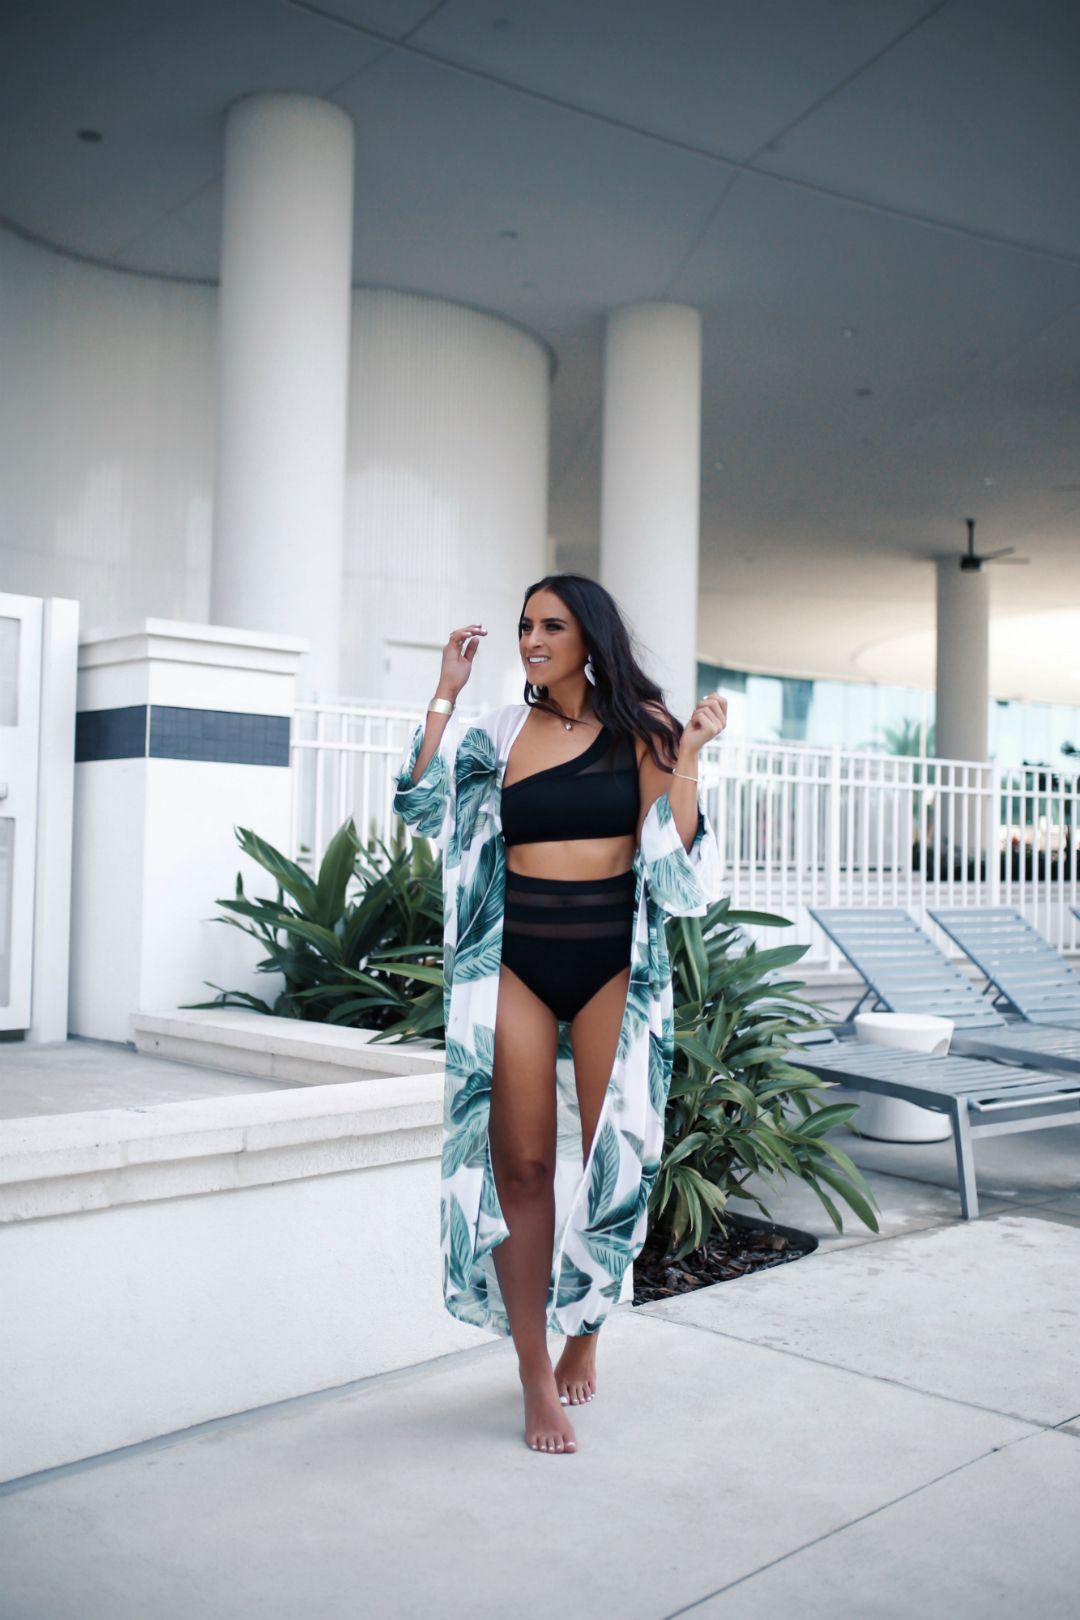 d1ccaa31c Blogger Sarah Lindner of The House of Sequins wearing 2 piece mesh black  bikini from target, chiffon palm tree cover up. Must have black bikini from  Target ...